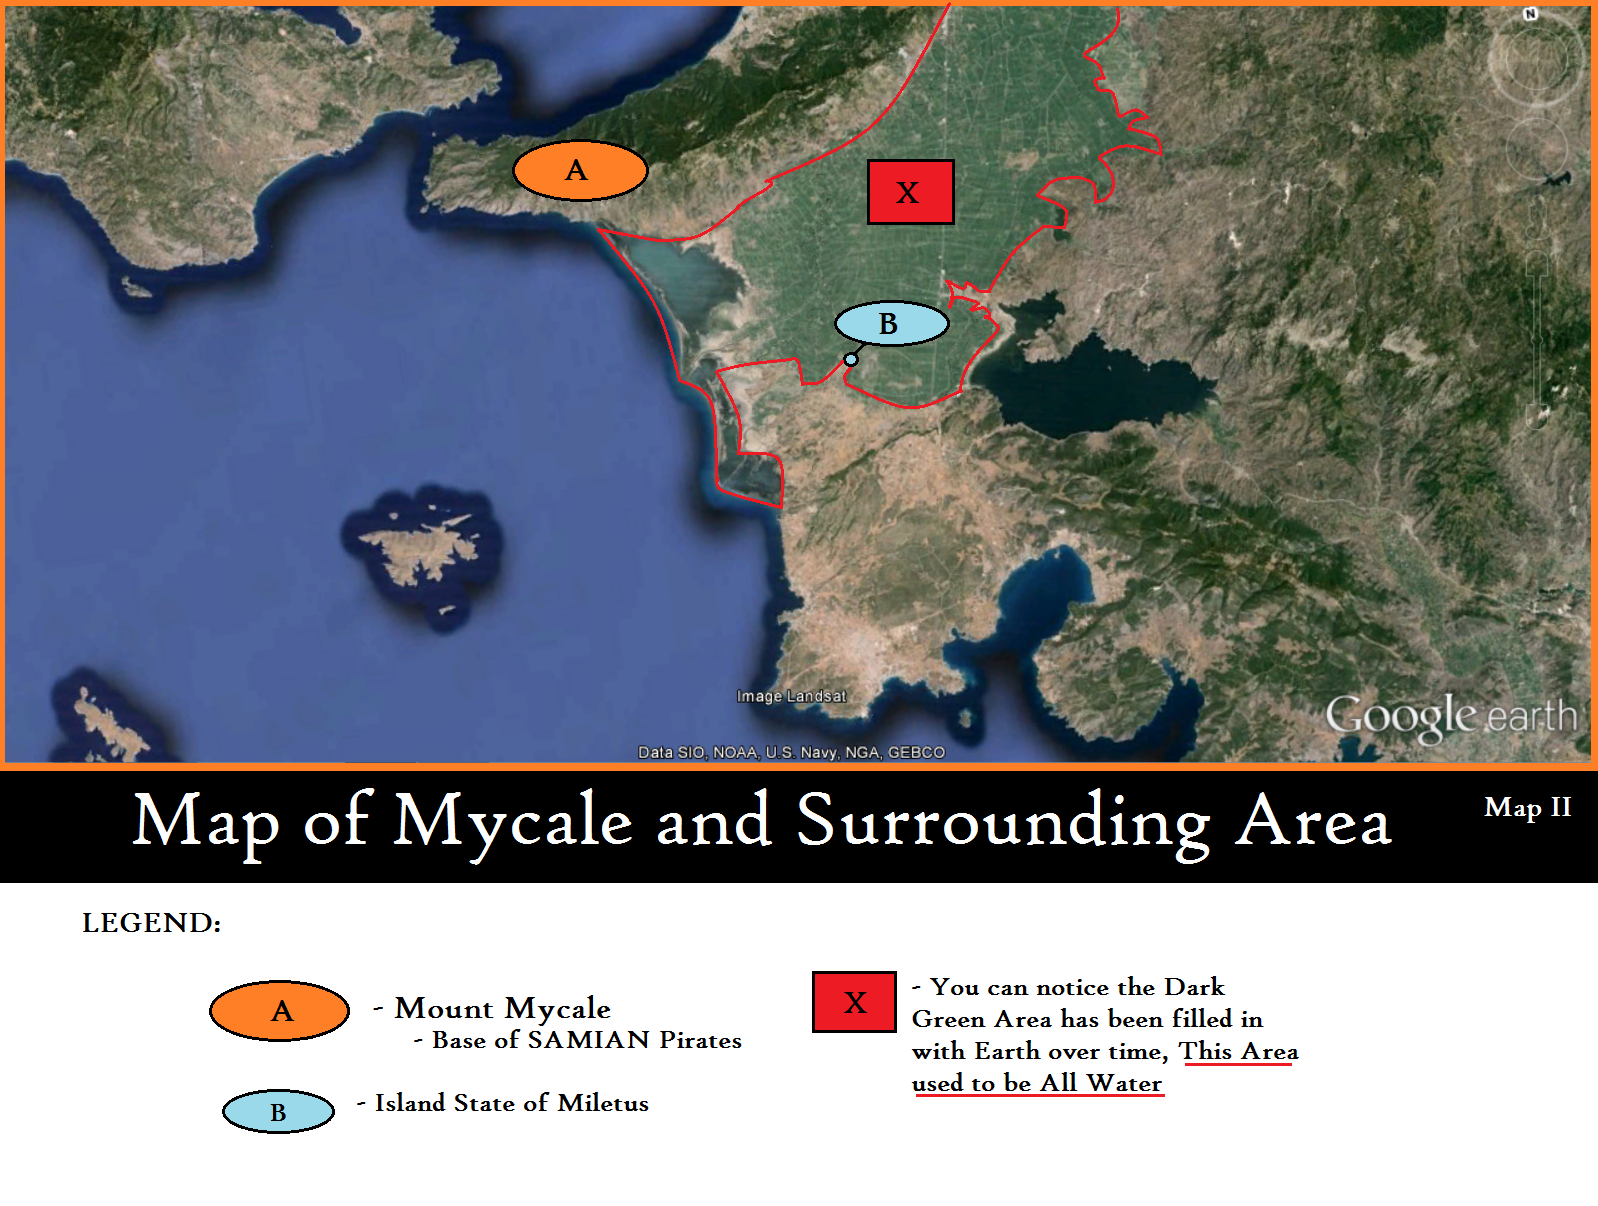 Map of Mycale and Surrounding Area